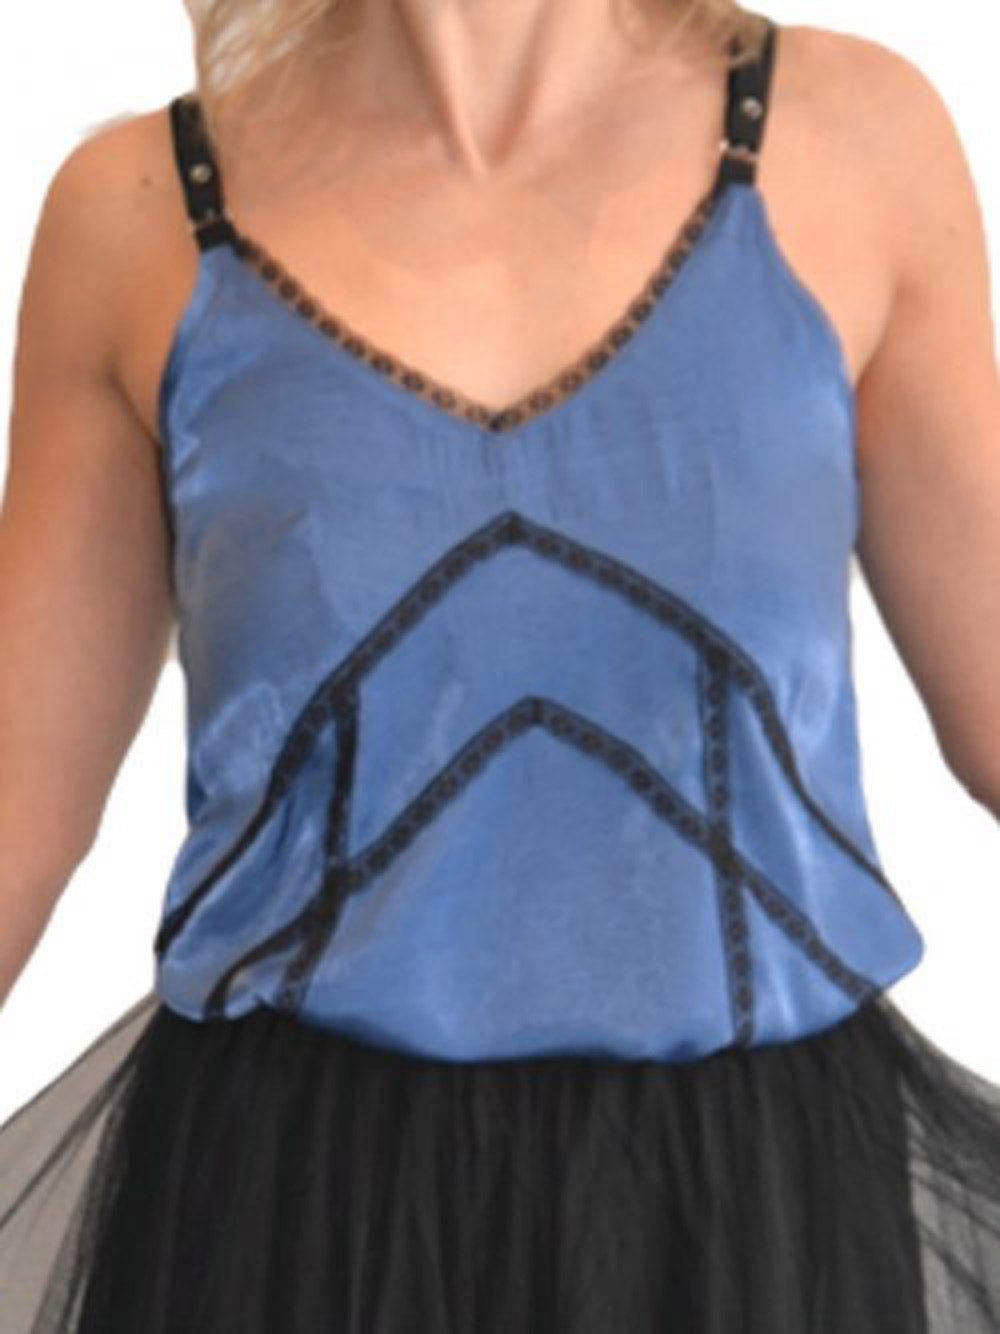 INZAGI Donatella Camisole Top - Blue